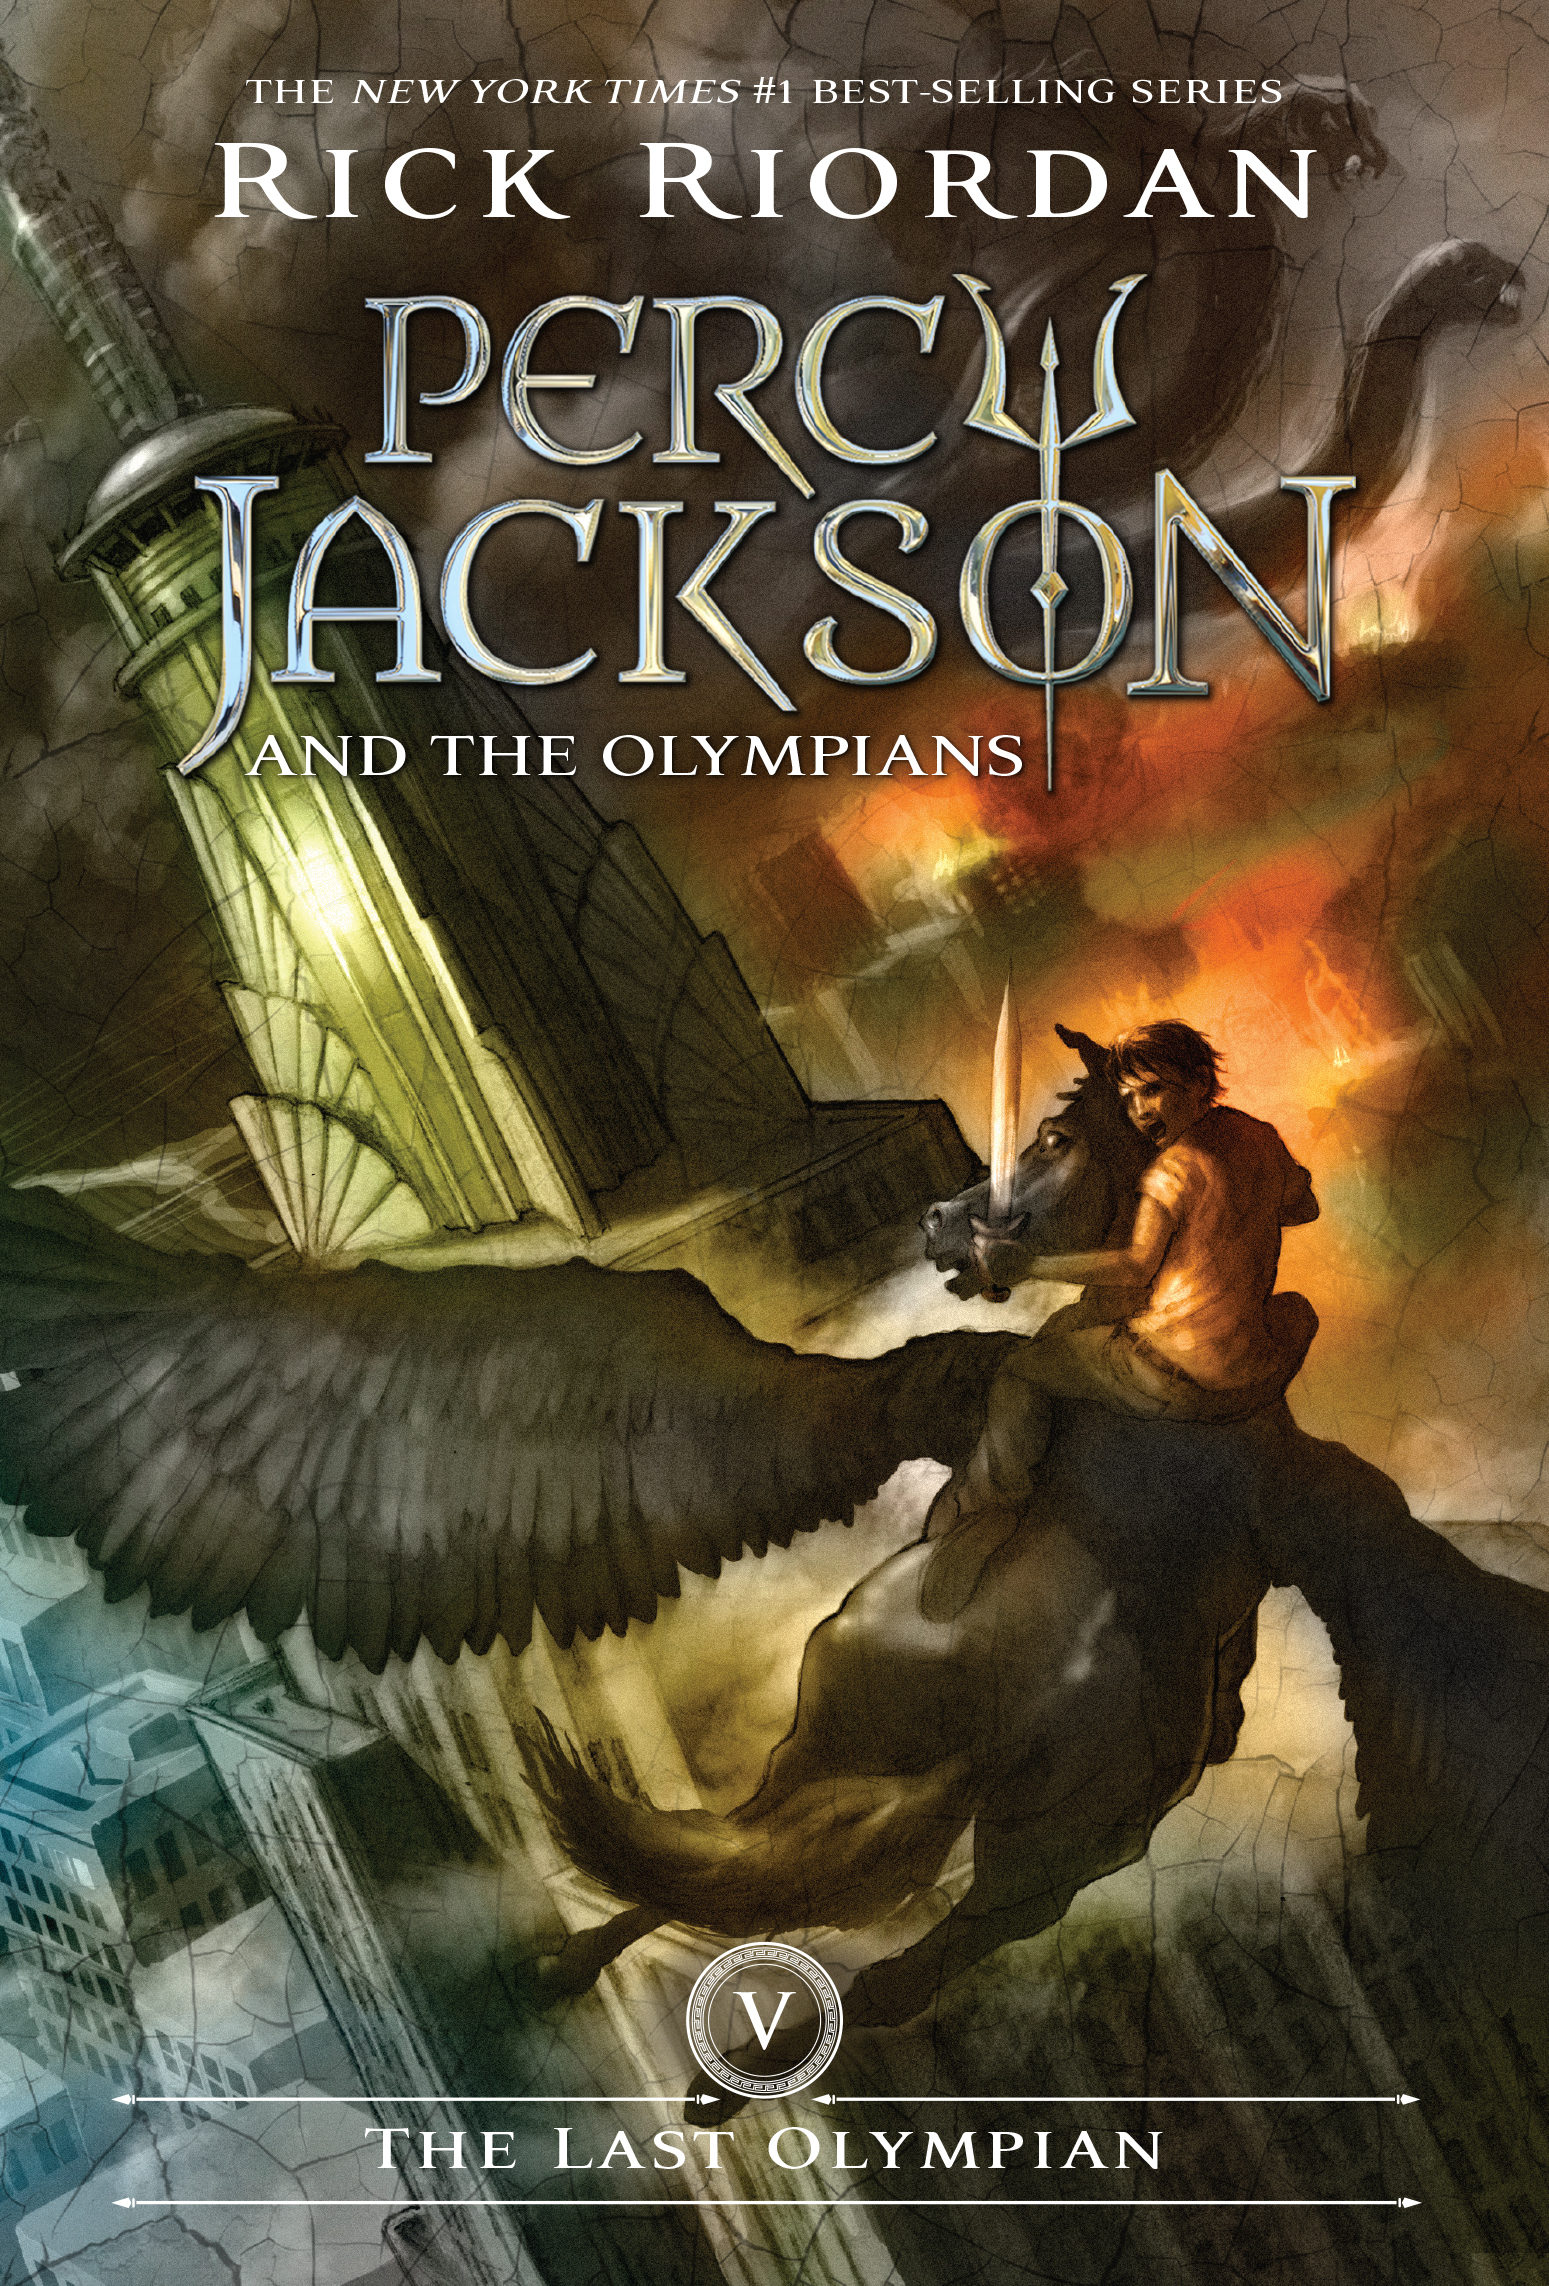 Cover Image of The Last Olympian (Percy Jackson and the Olympians, Book 5)